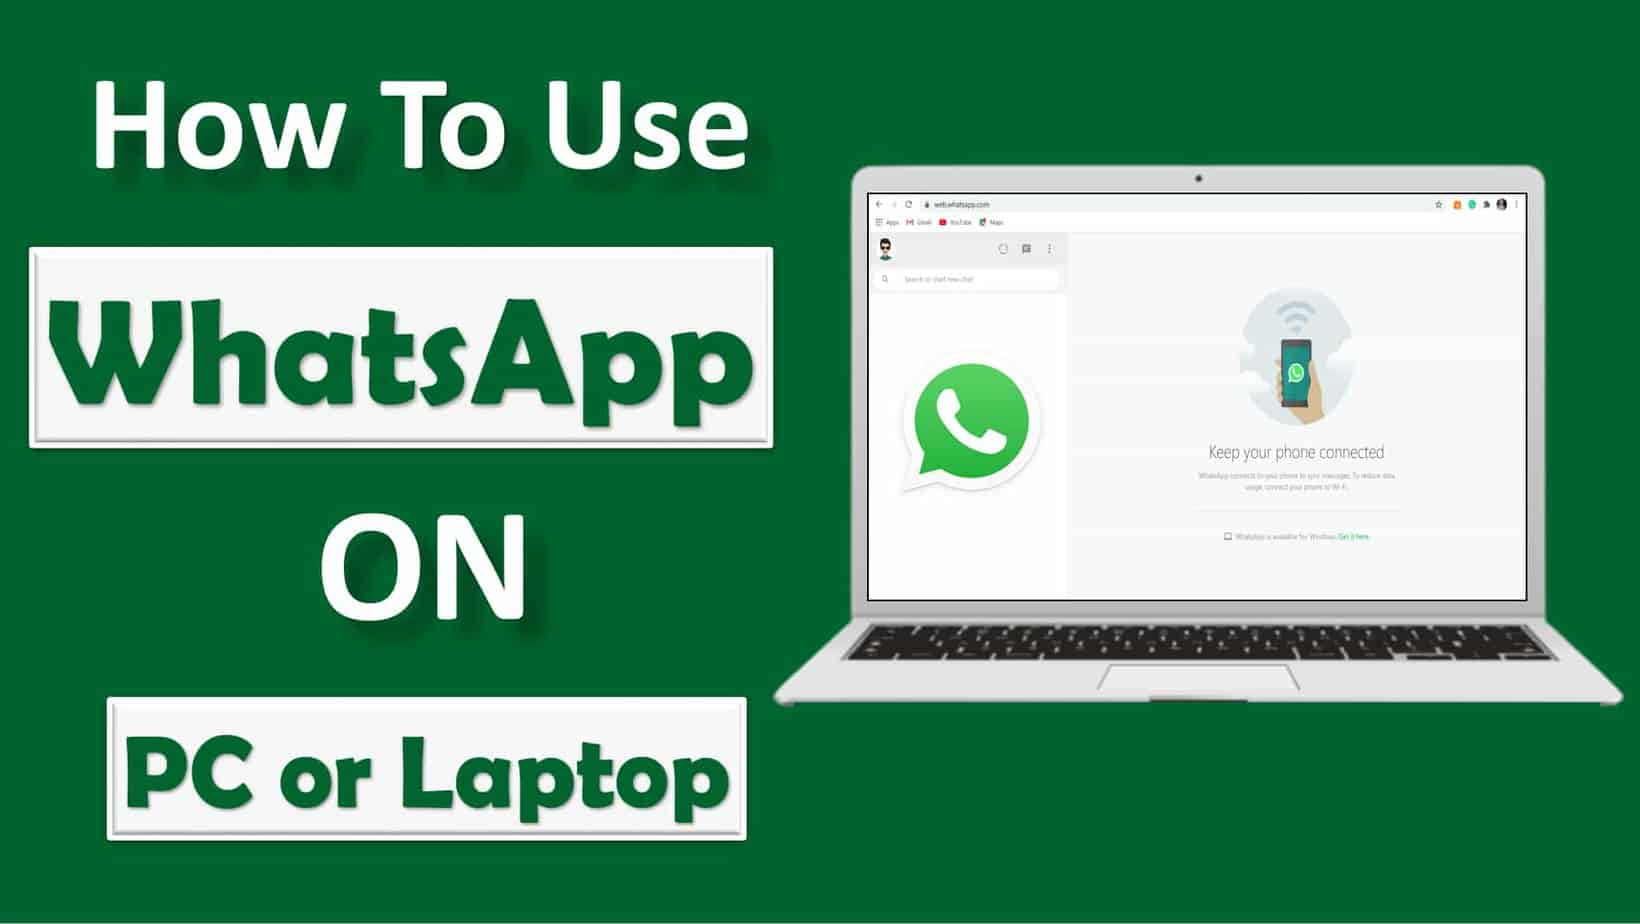 How To Use WhatsApp On Laptop Or PC